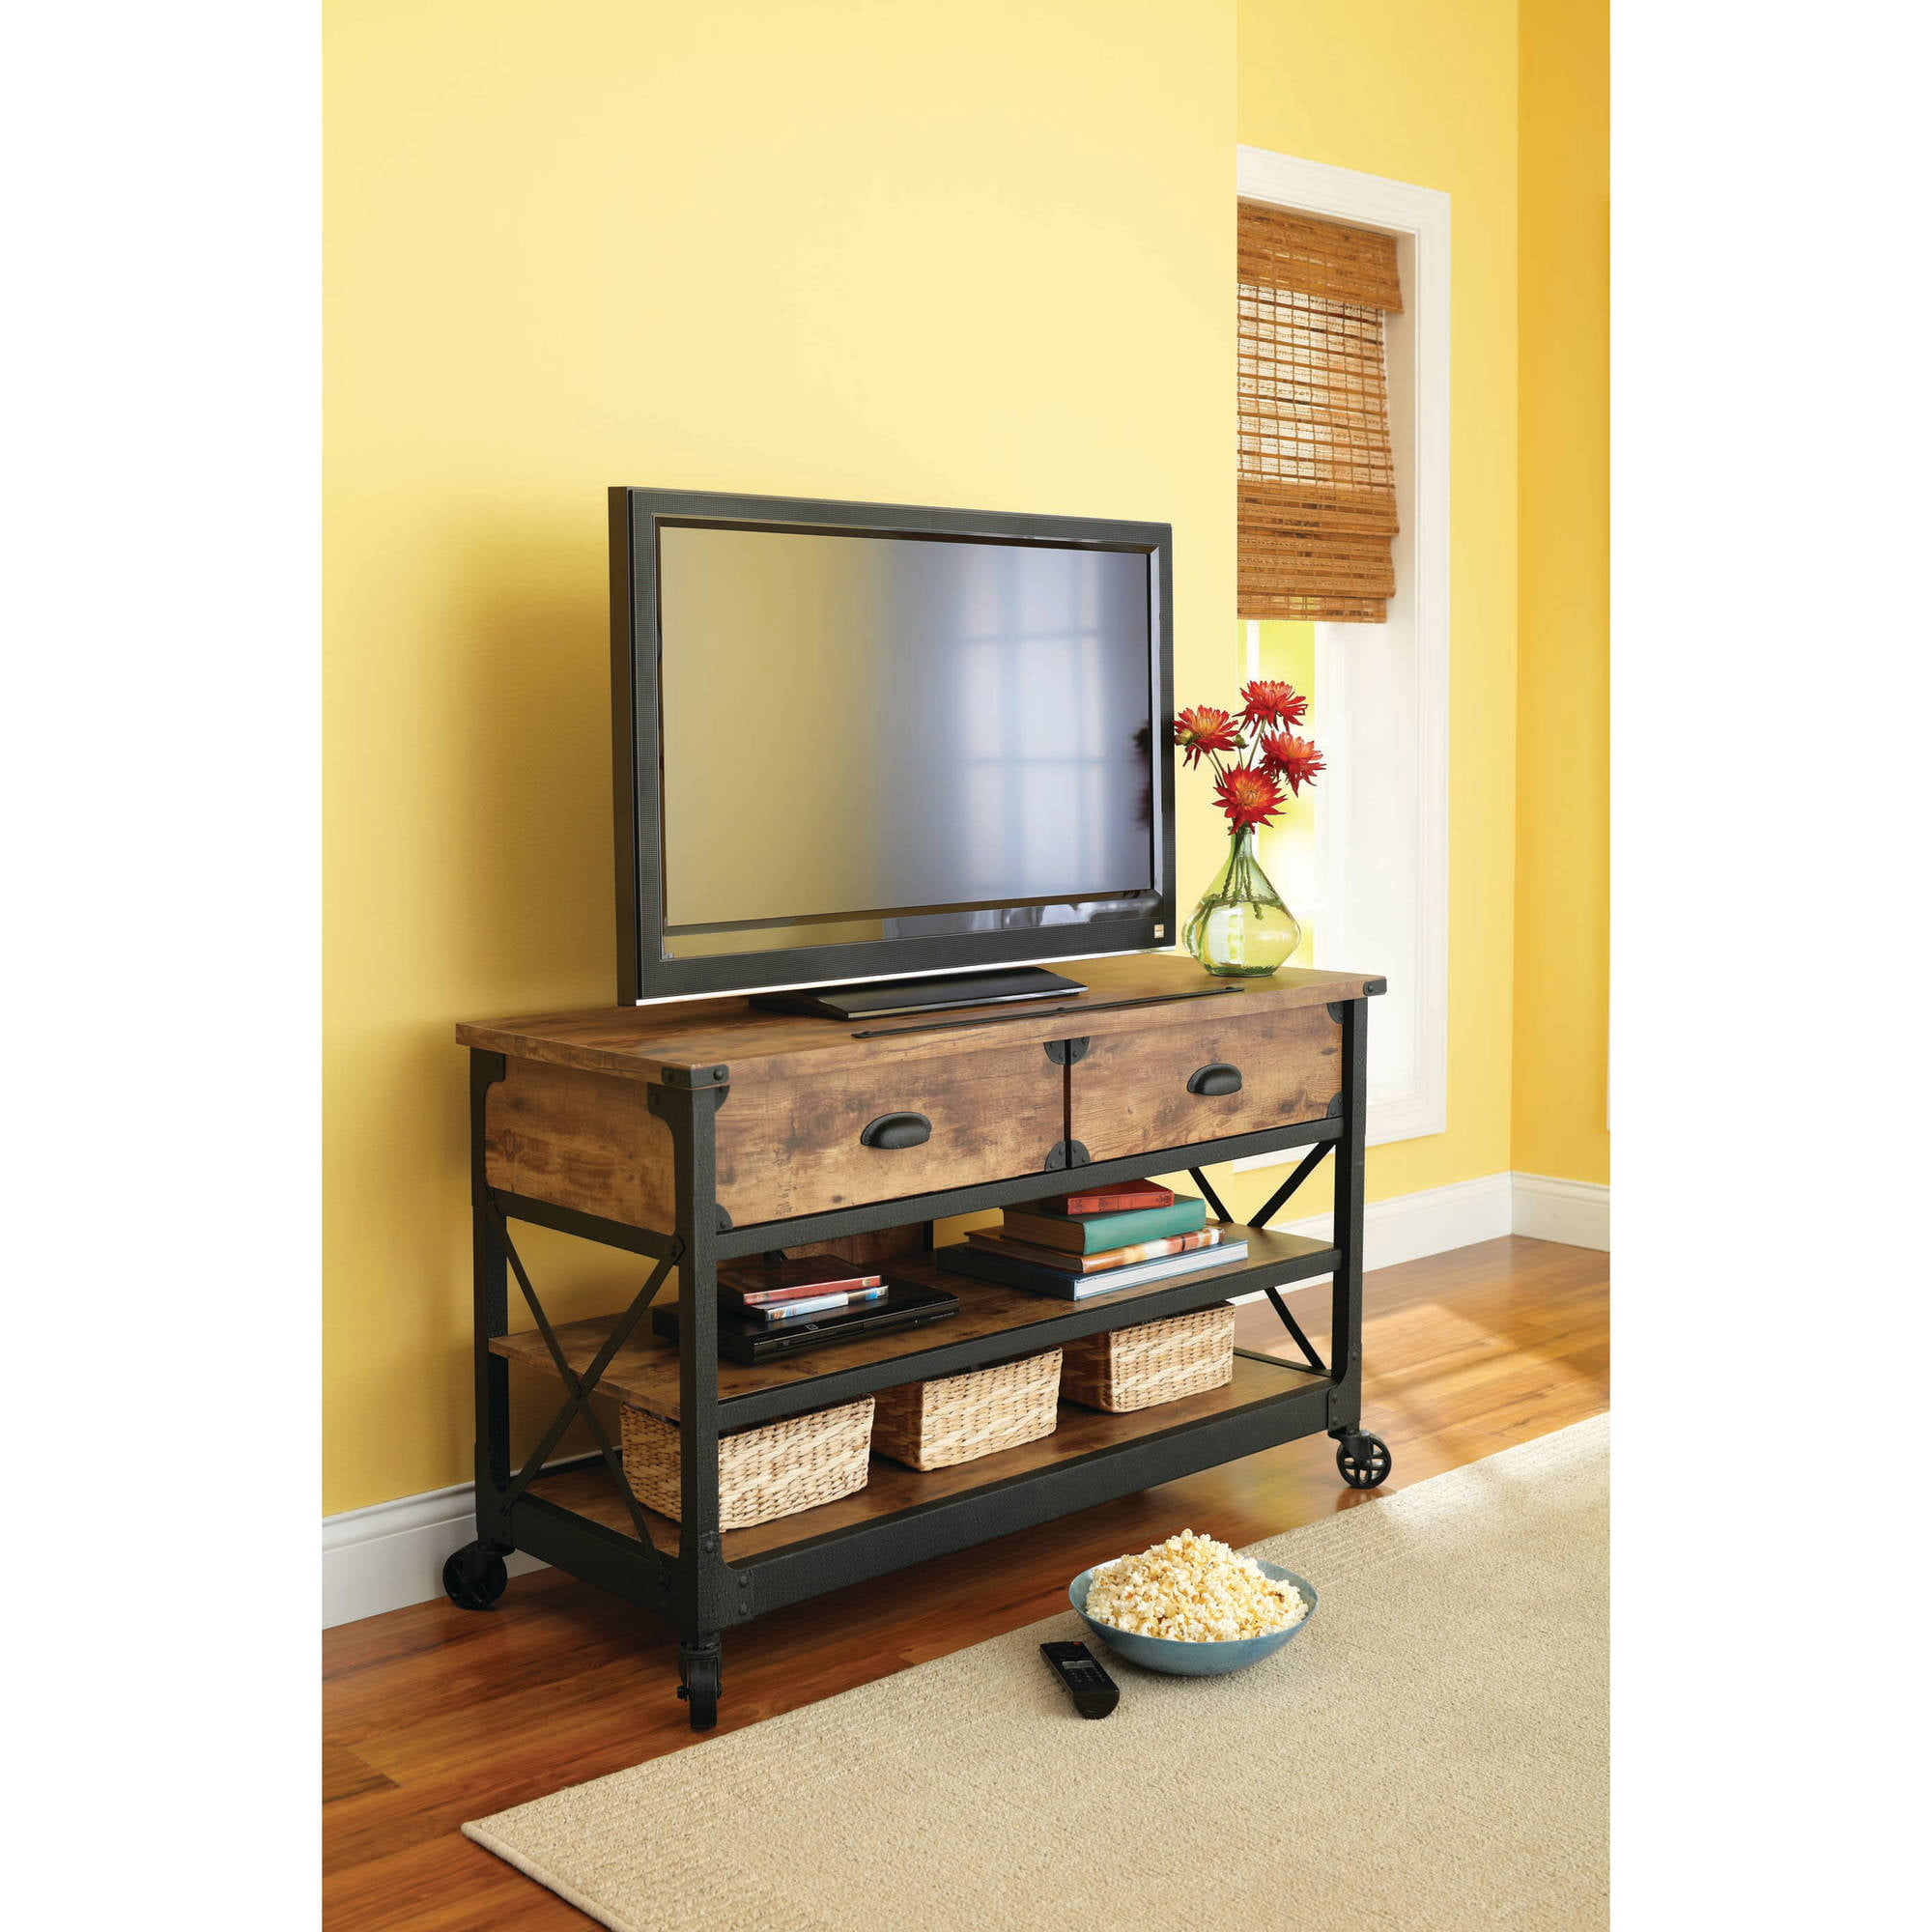 Marvelous Better Homes And Gardens Rustic Country Antiqued Black/Pine Panel TV Stand  For TVs Up